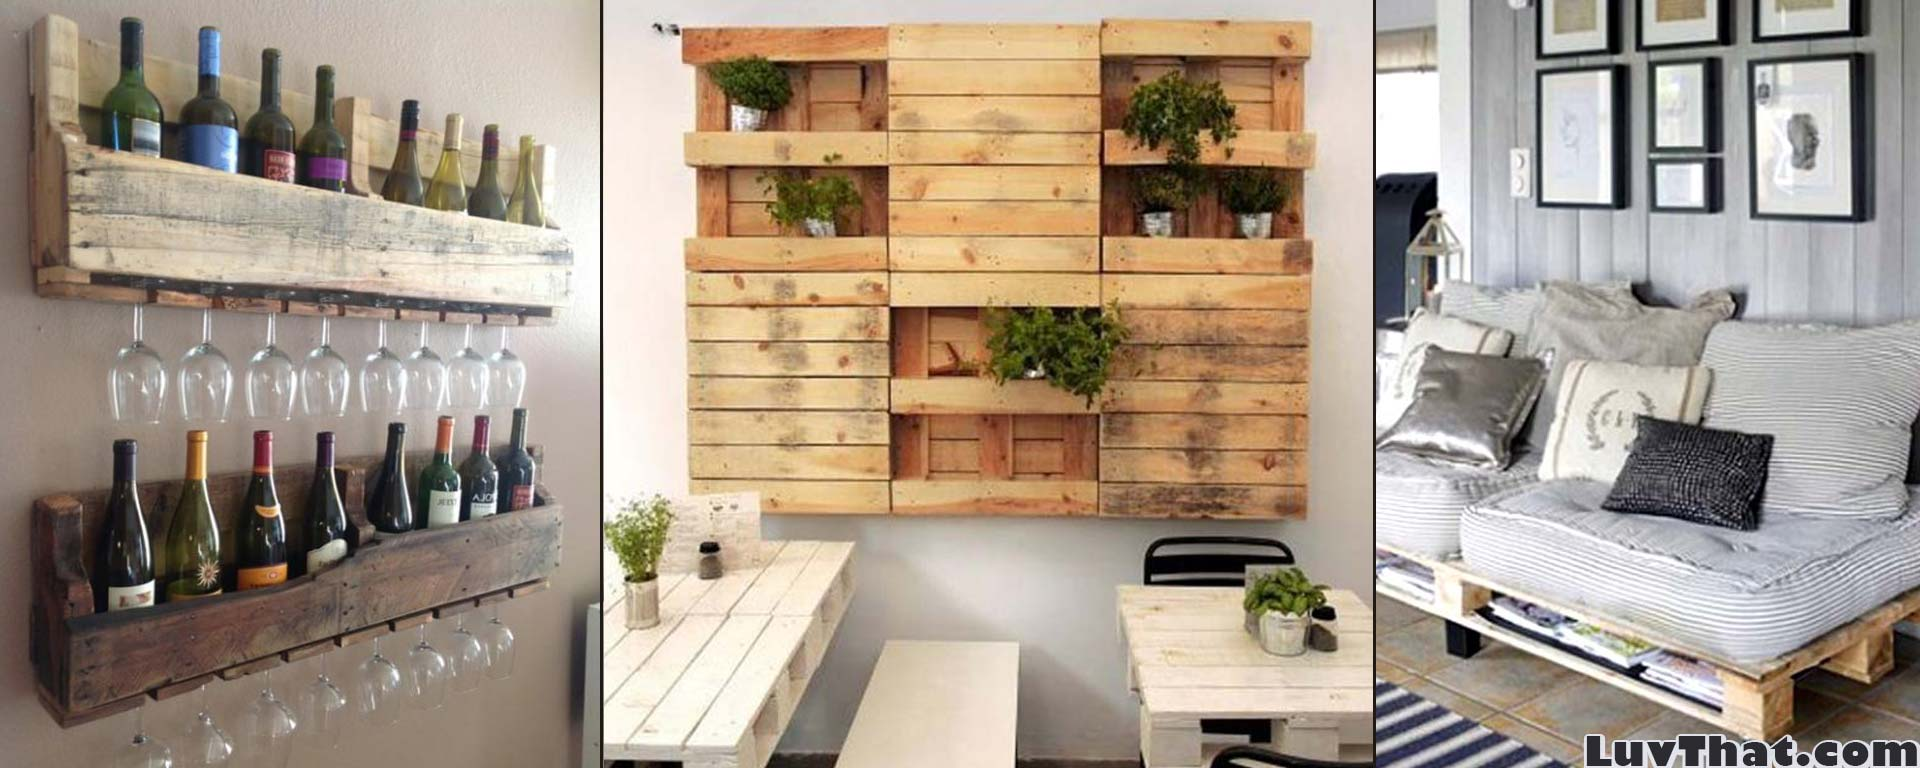 Pallet Wood Wall Kitchen